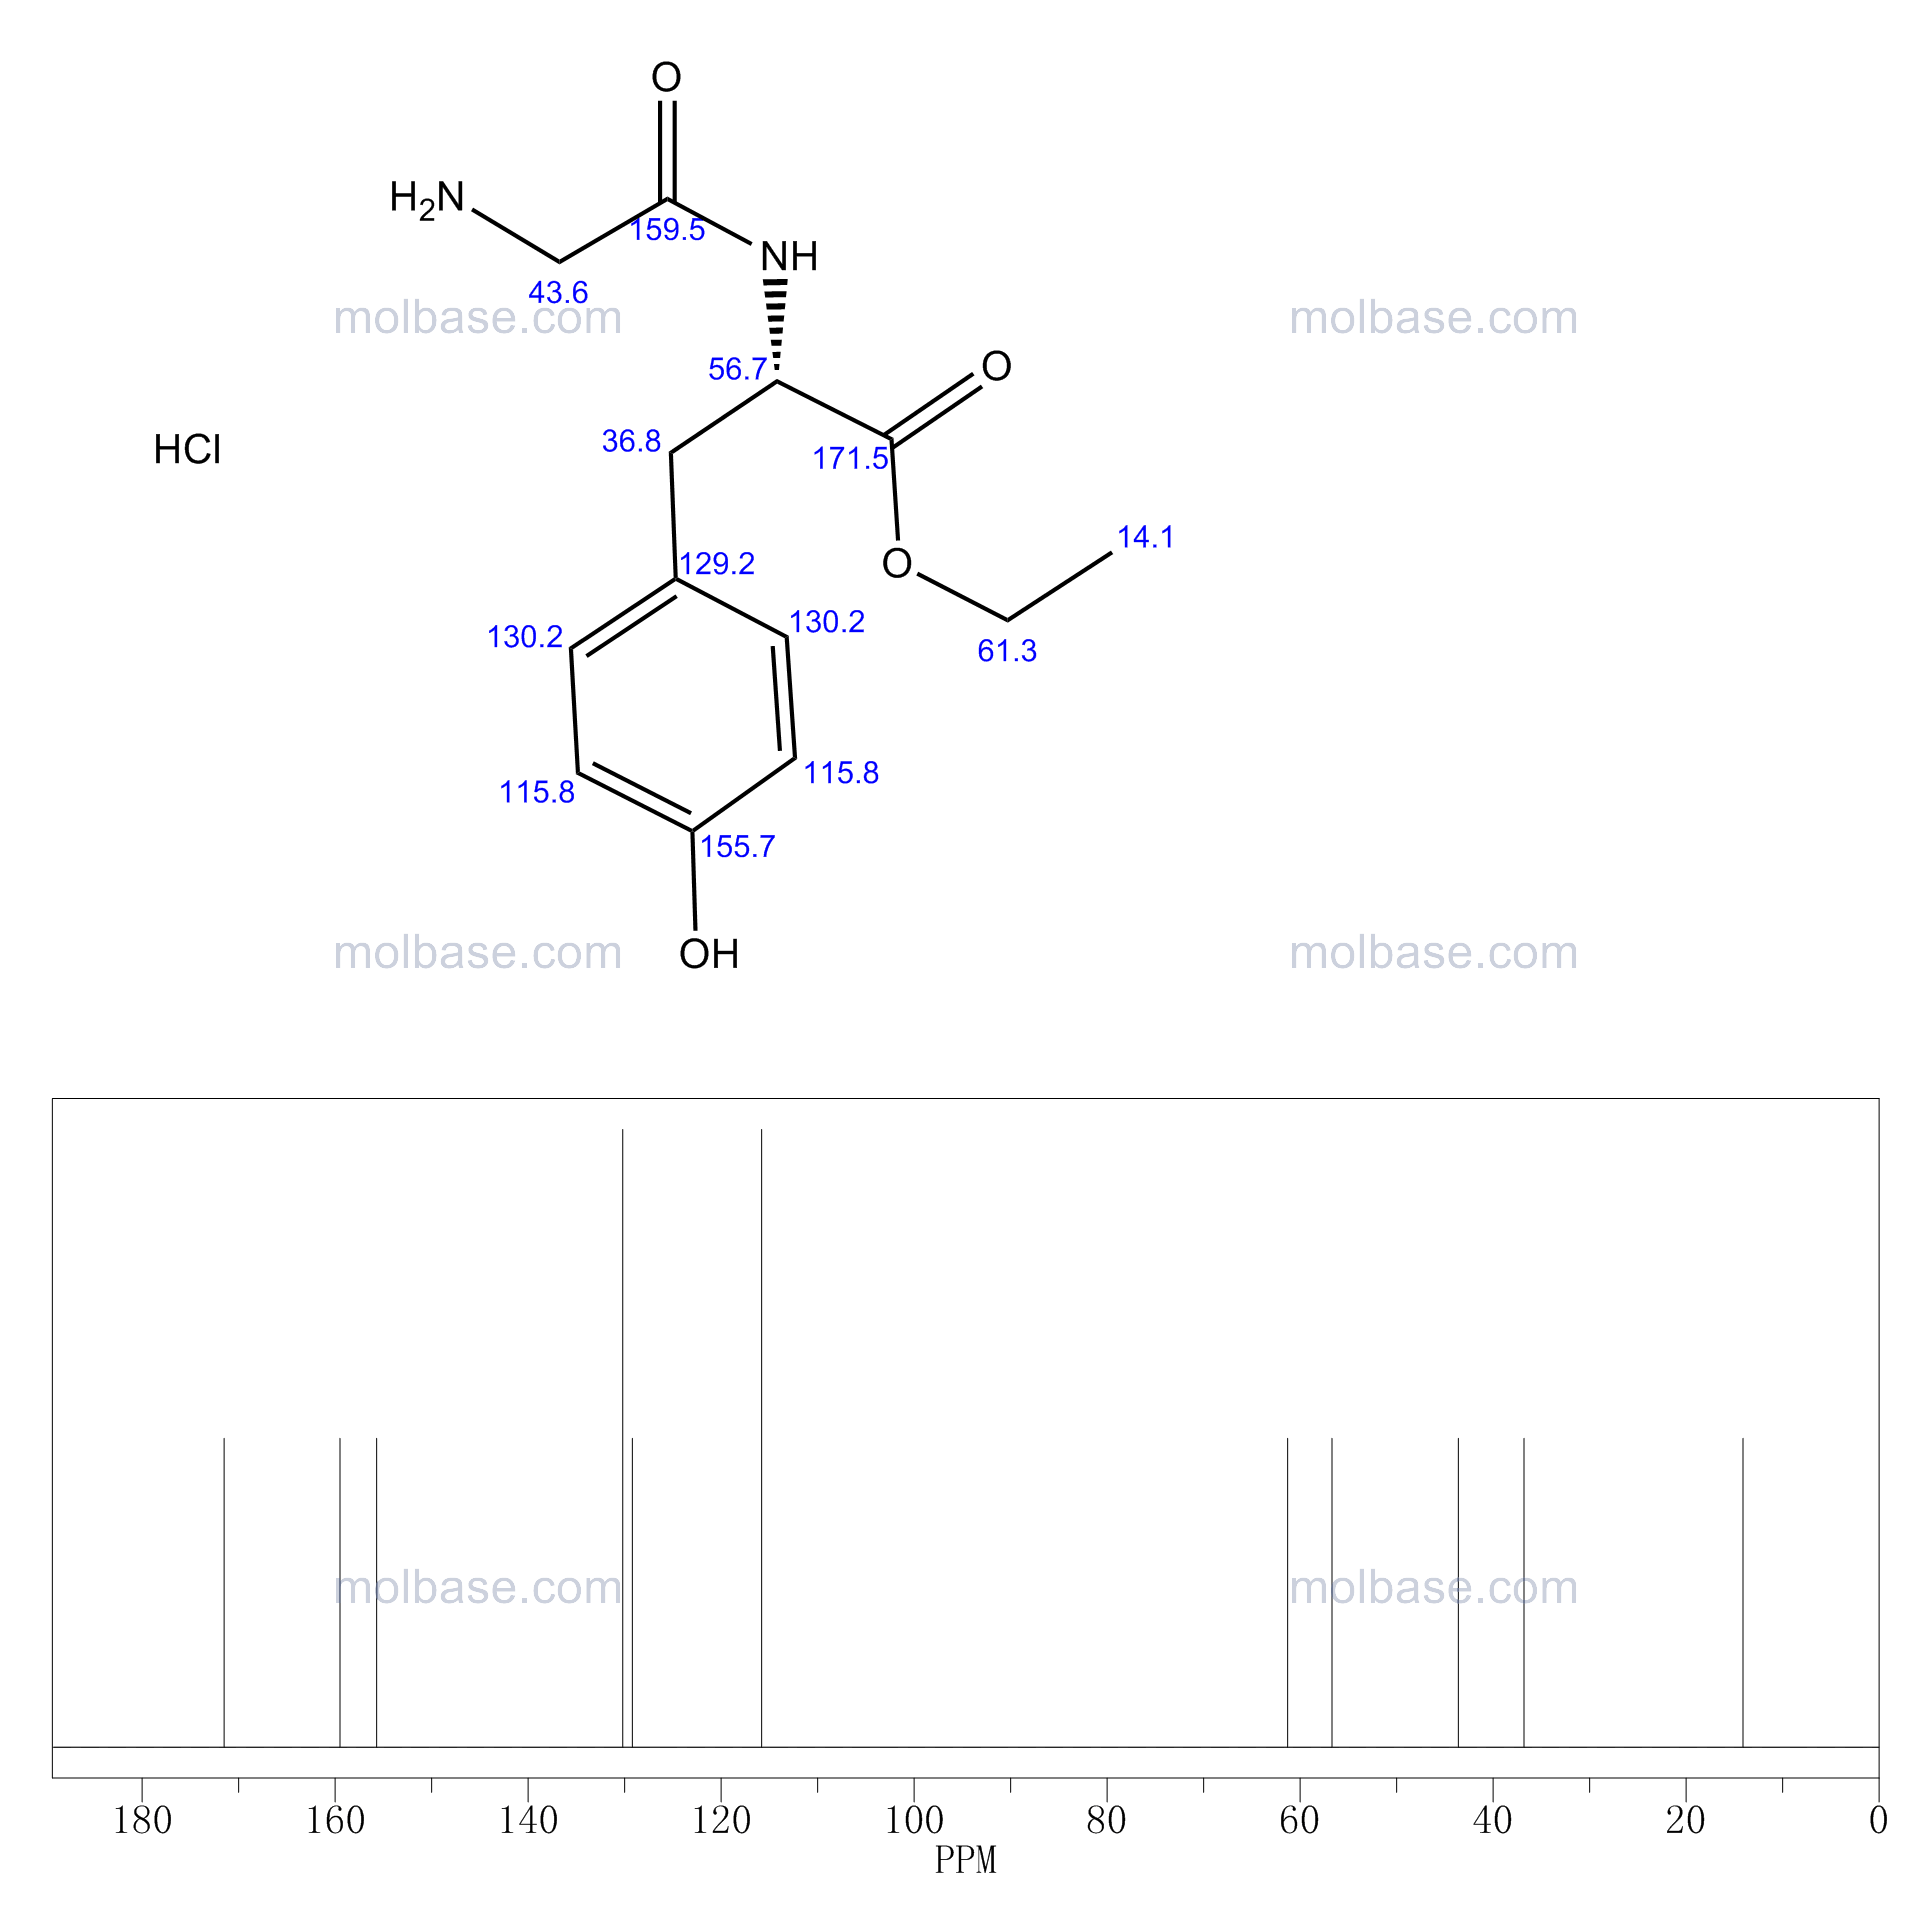 H-GLY-TYR-OET HCL NMR spectra analysis, Chemical CAS NO. 2087-45-8 NMR spectral analysis, H-GLY-TYR-OET HCL C-NMR spectrum